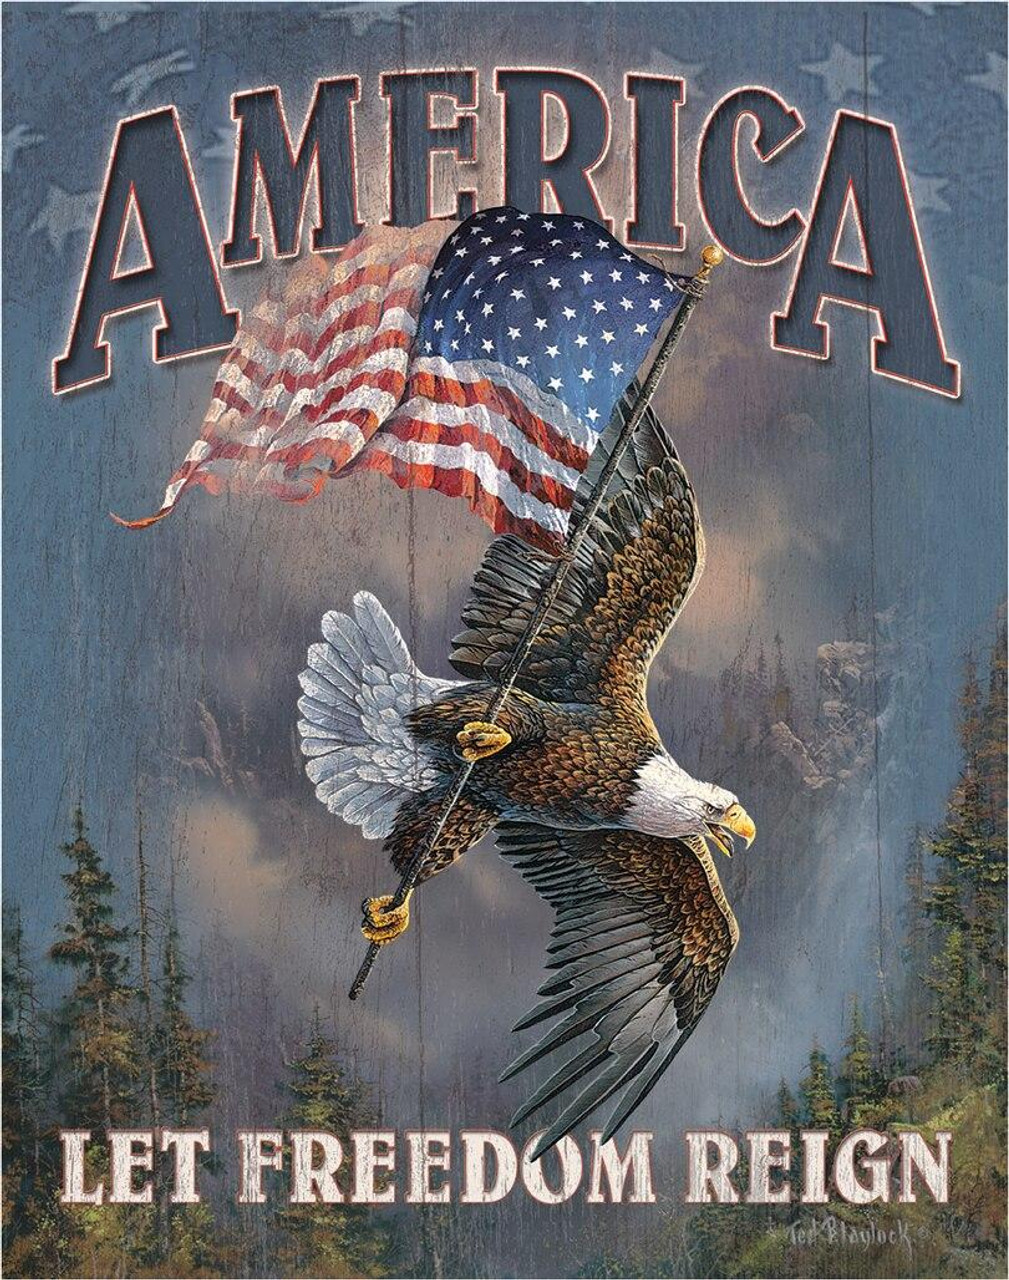 America - Let Freedom Reign